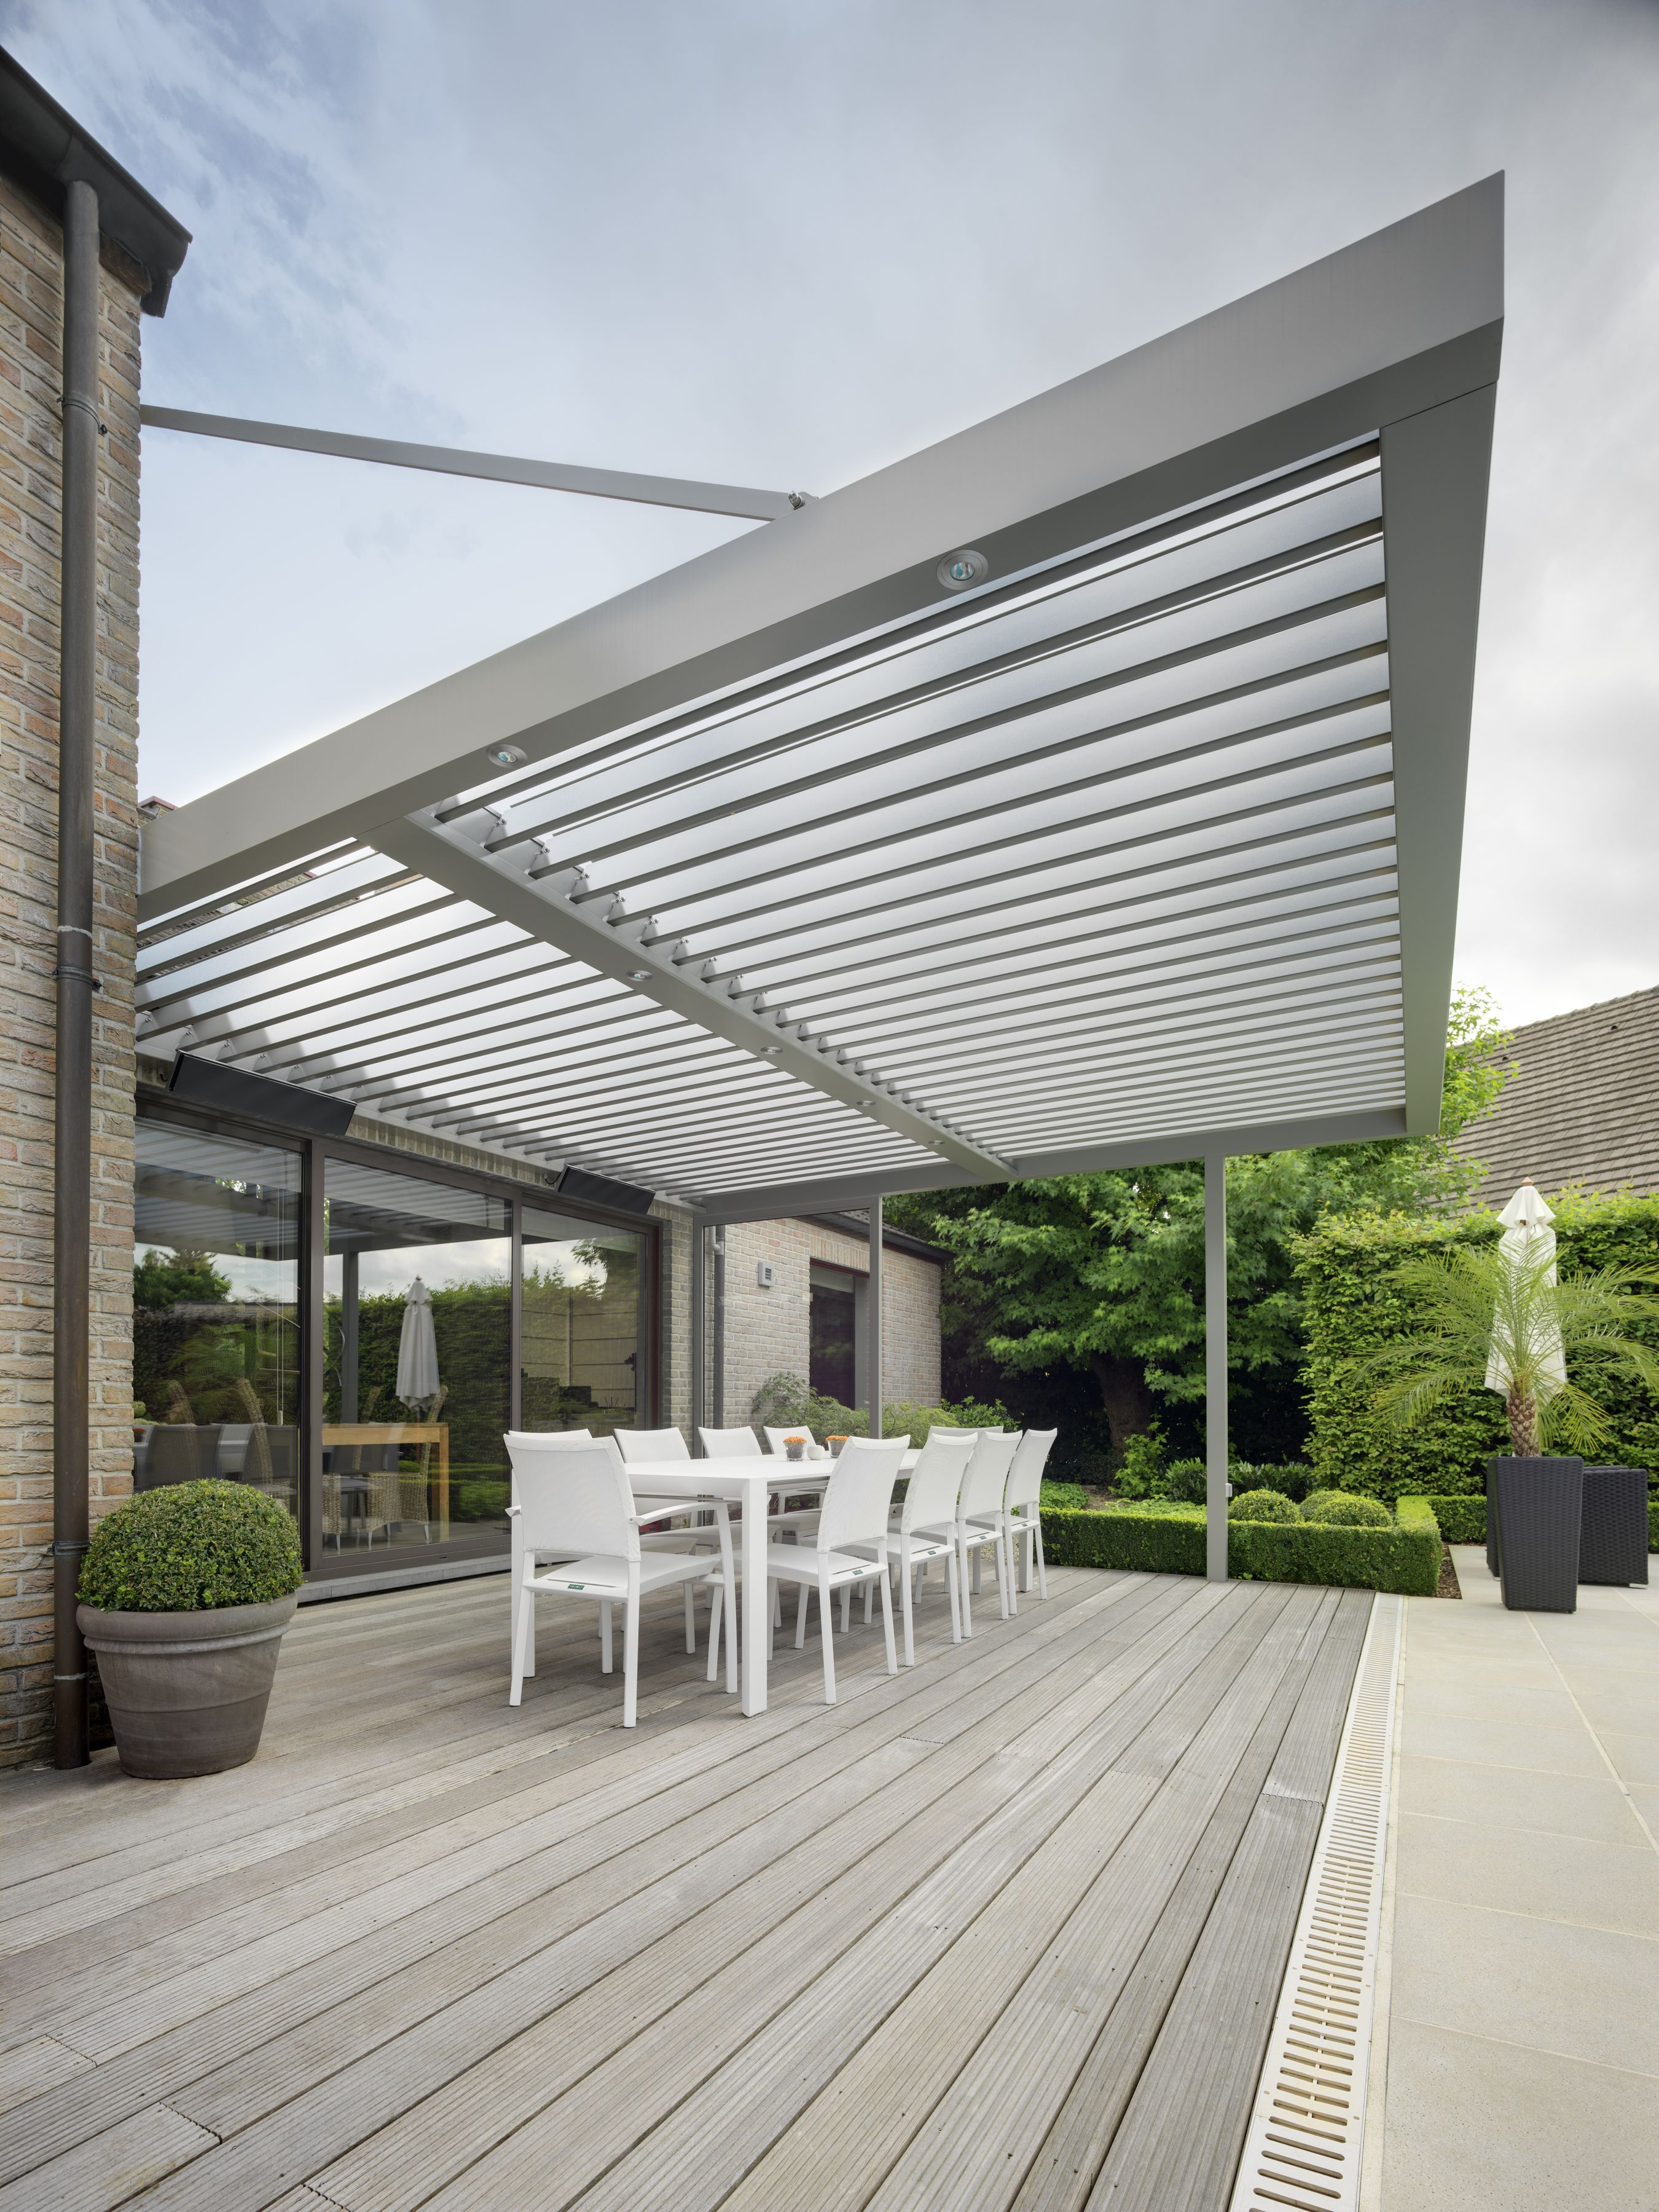 this all weather patio roof system kingsland road. Black Bedroom Furniture Sets. Home Design Ideas